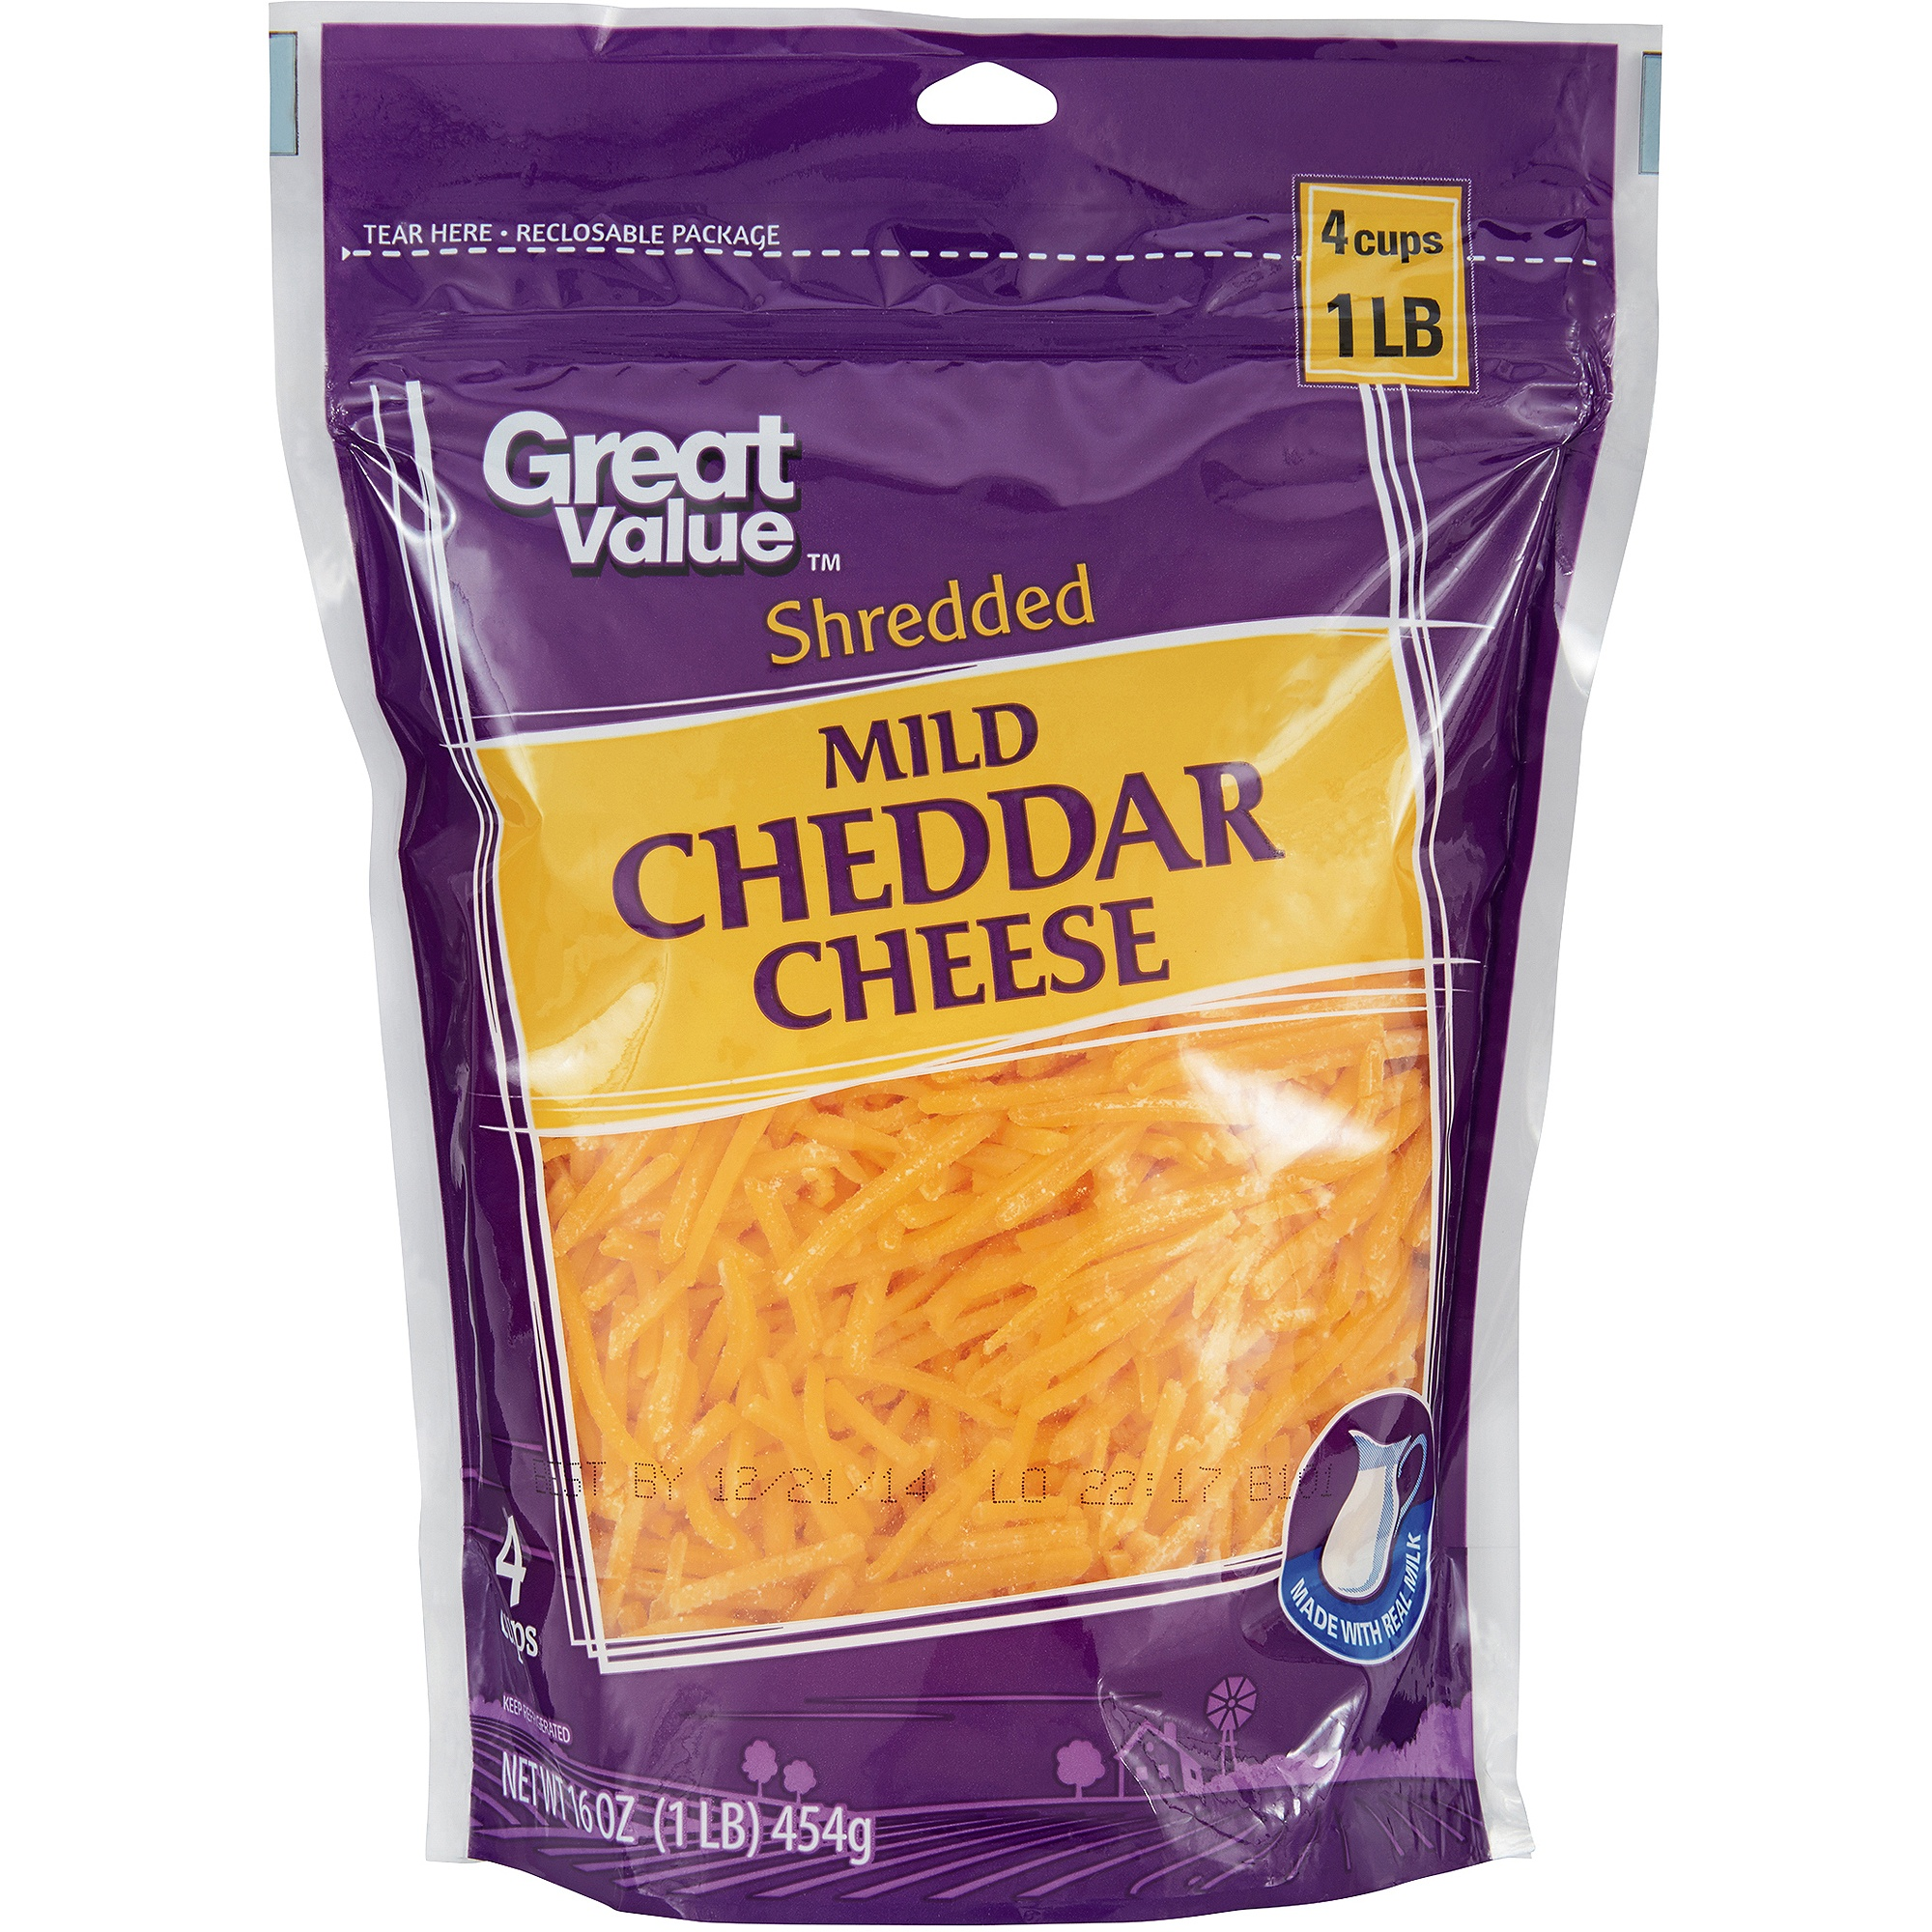 Cheese in Stand Up Pouch